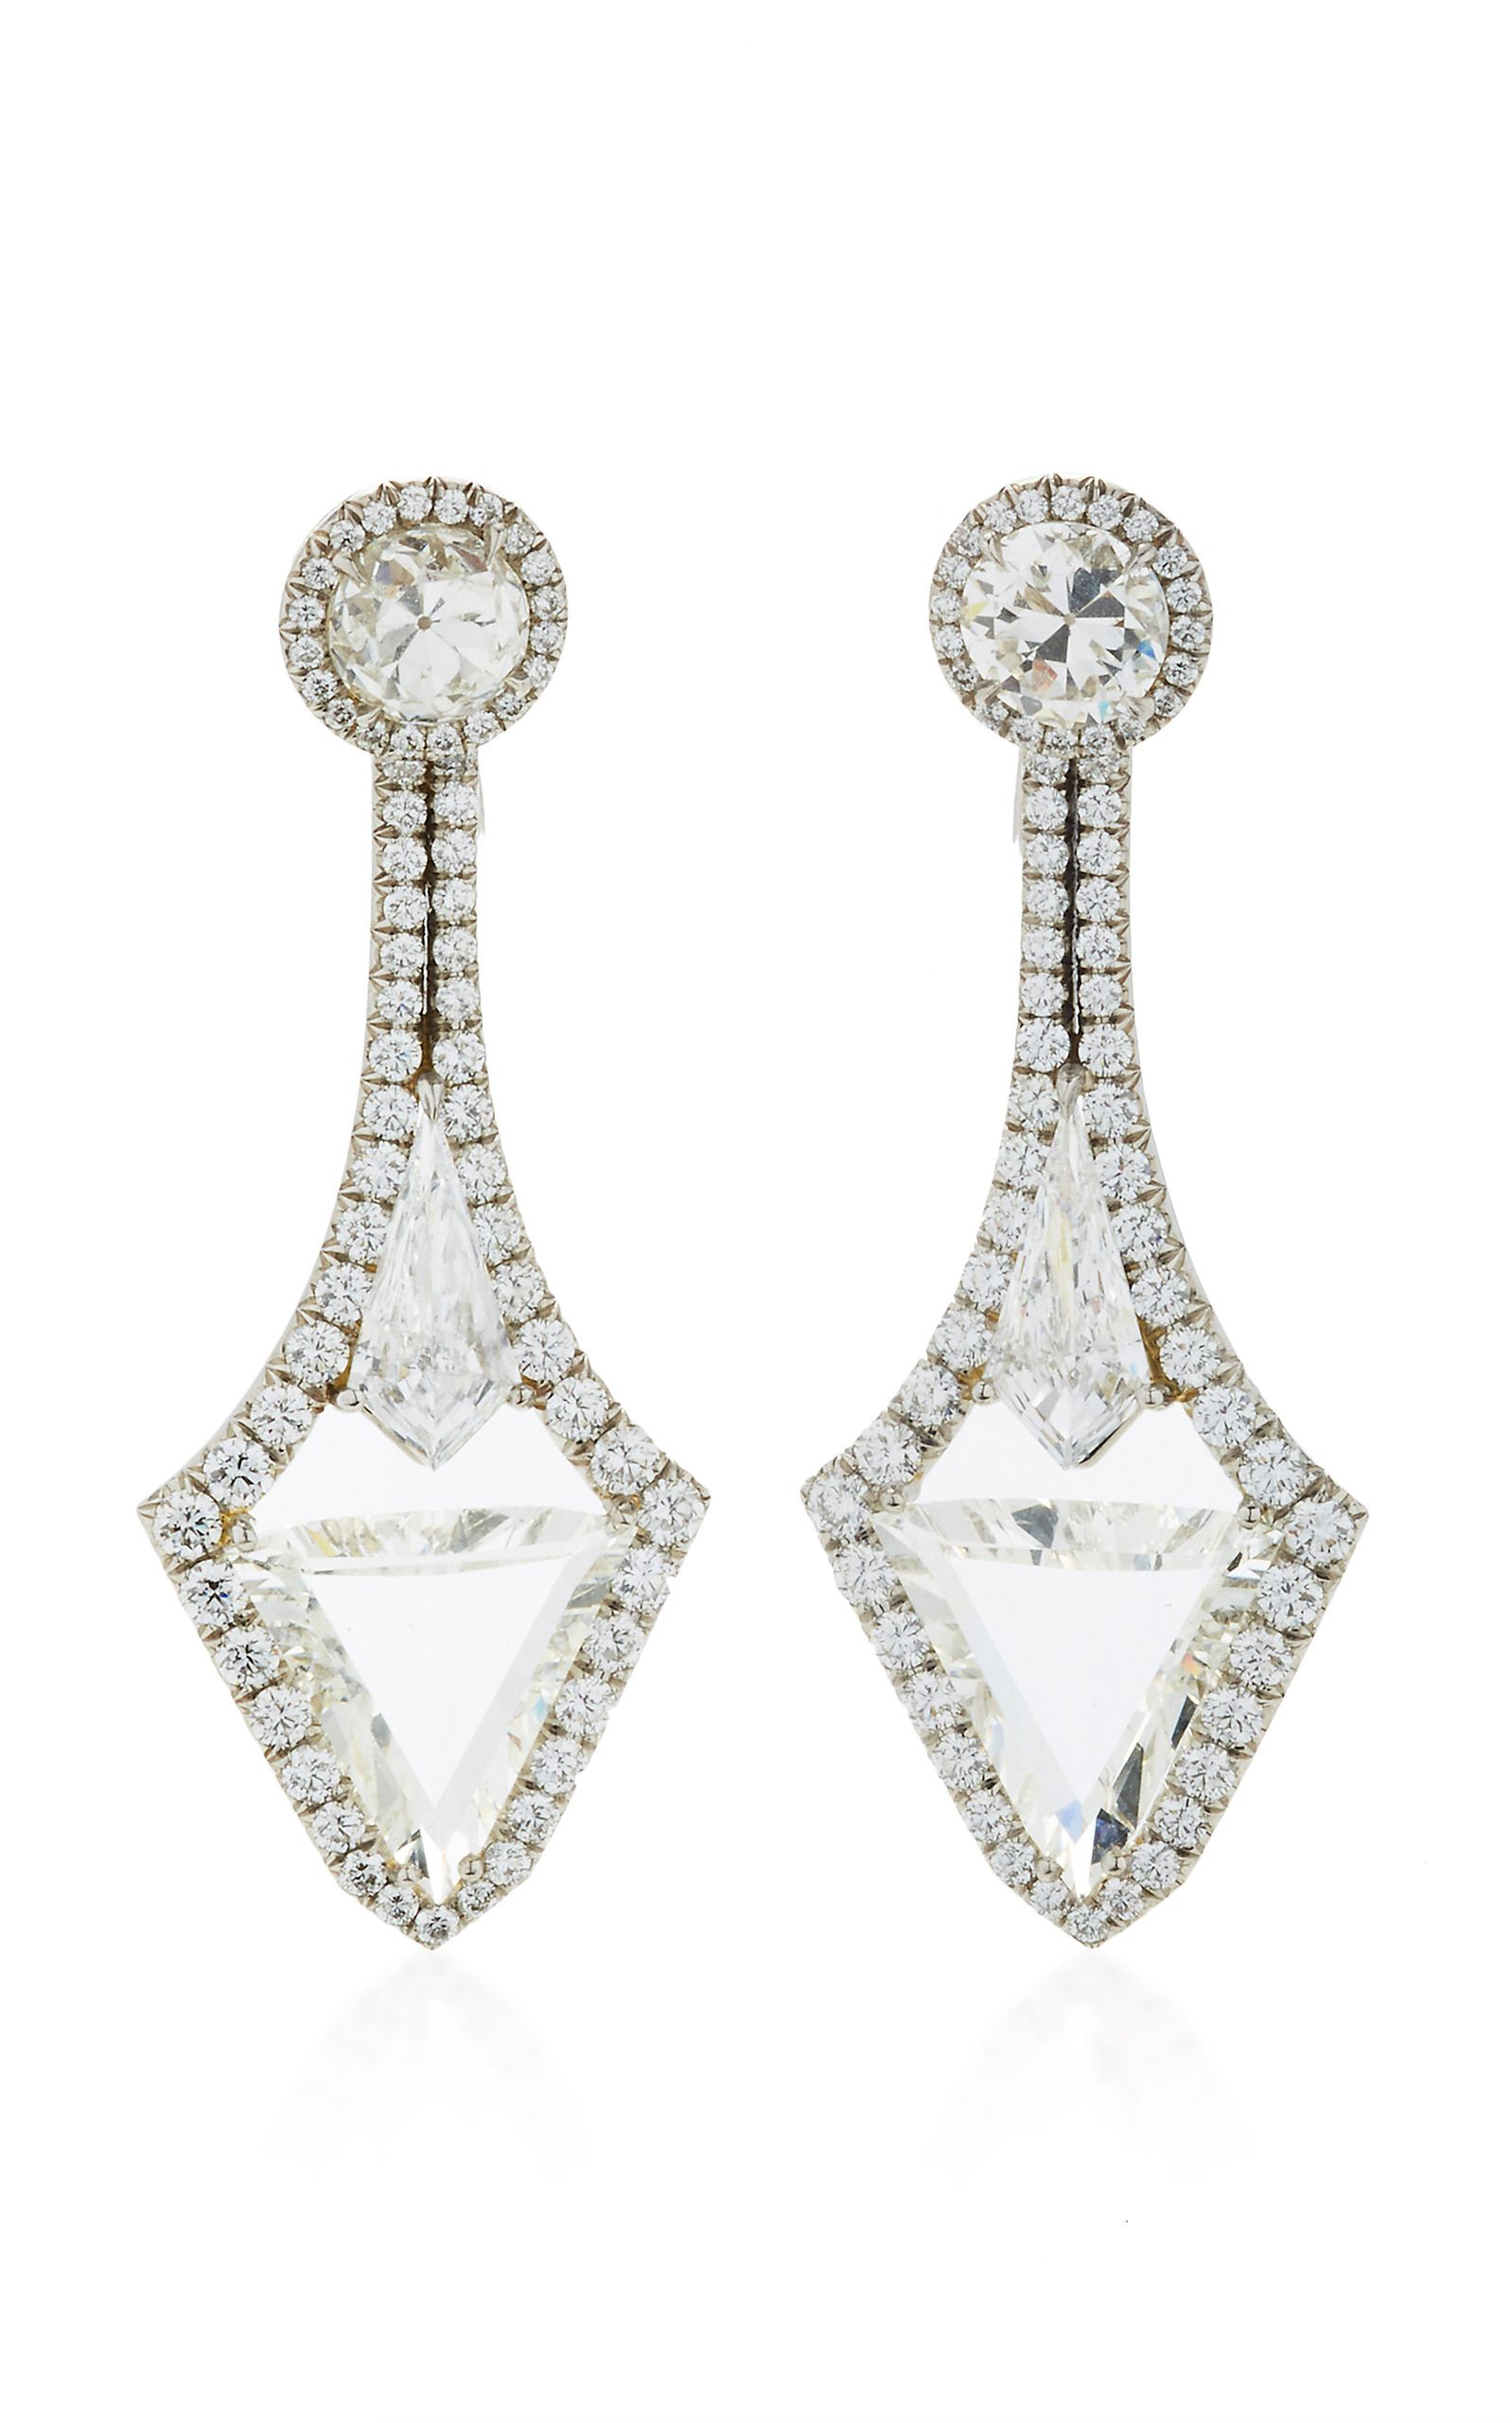 pinterest bayco diamond earrings pin of kind a one